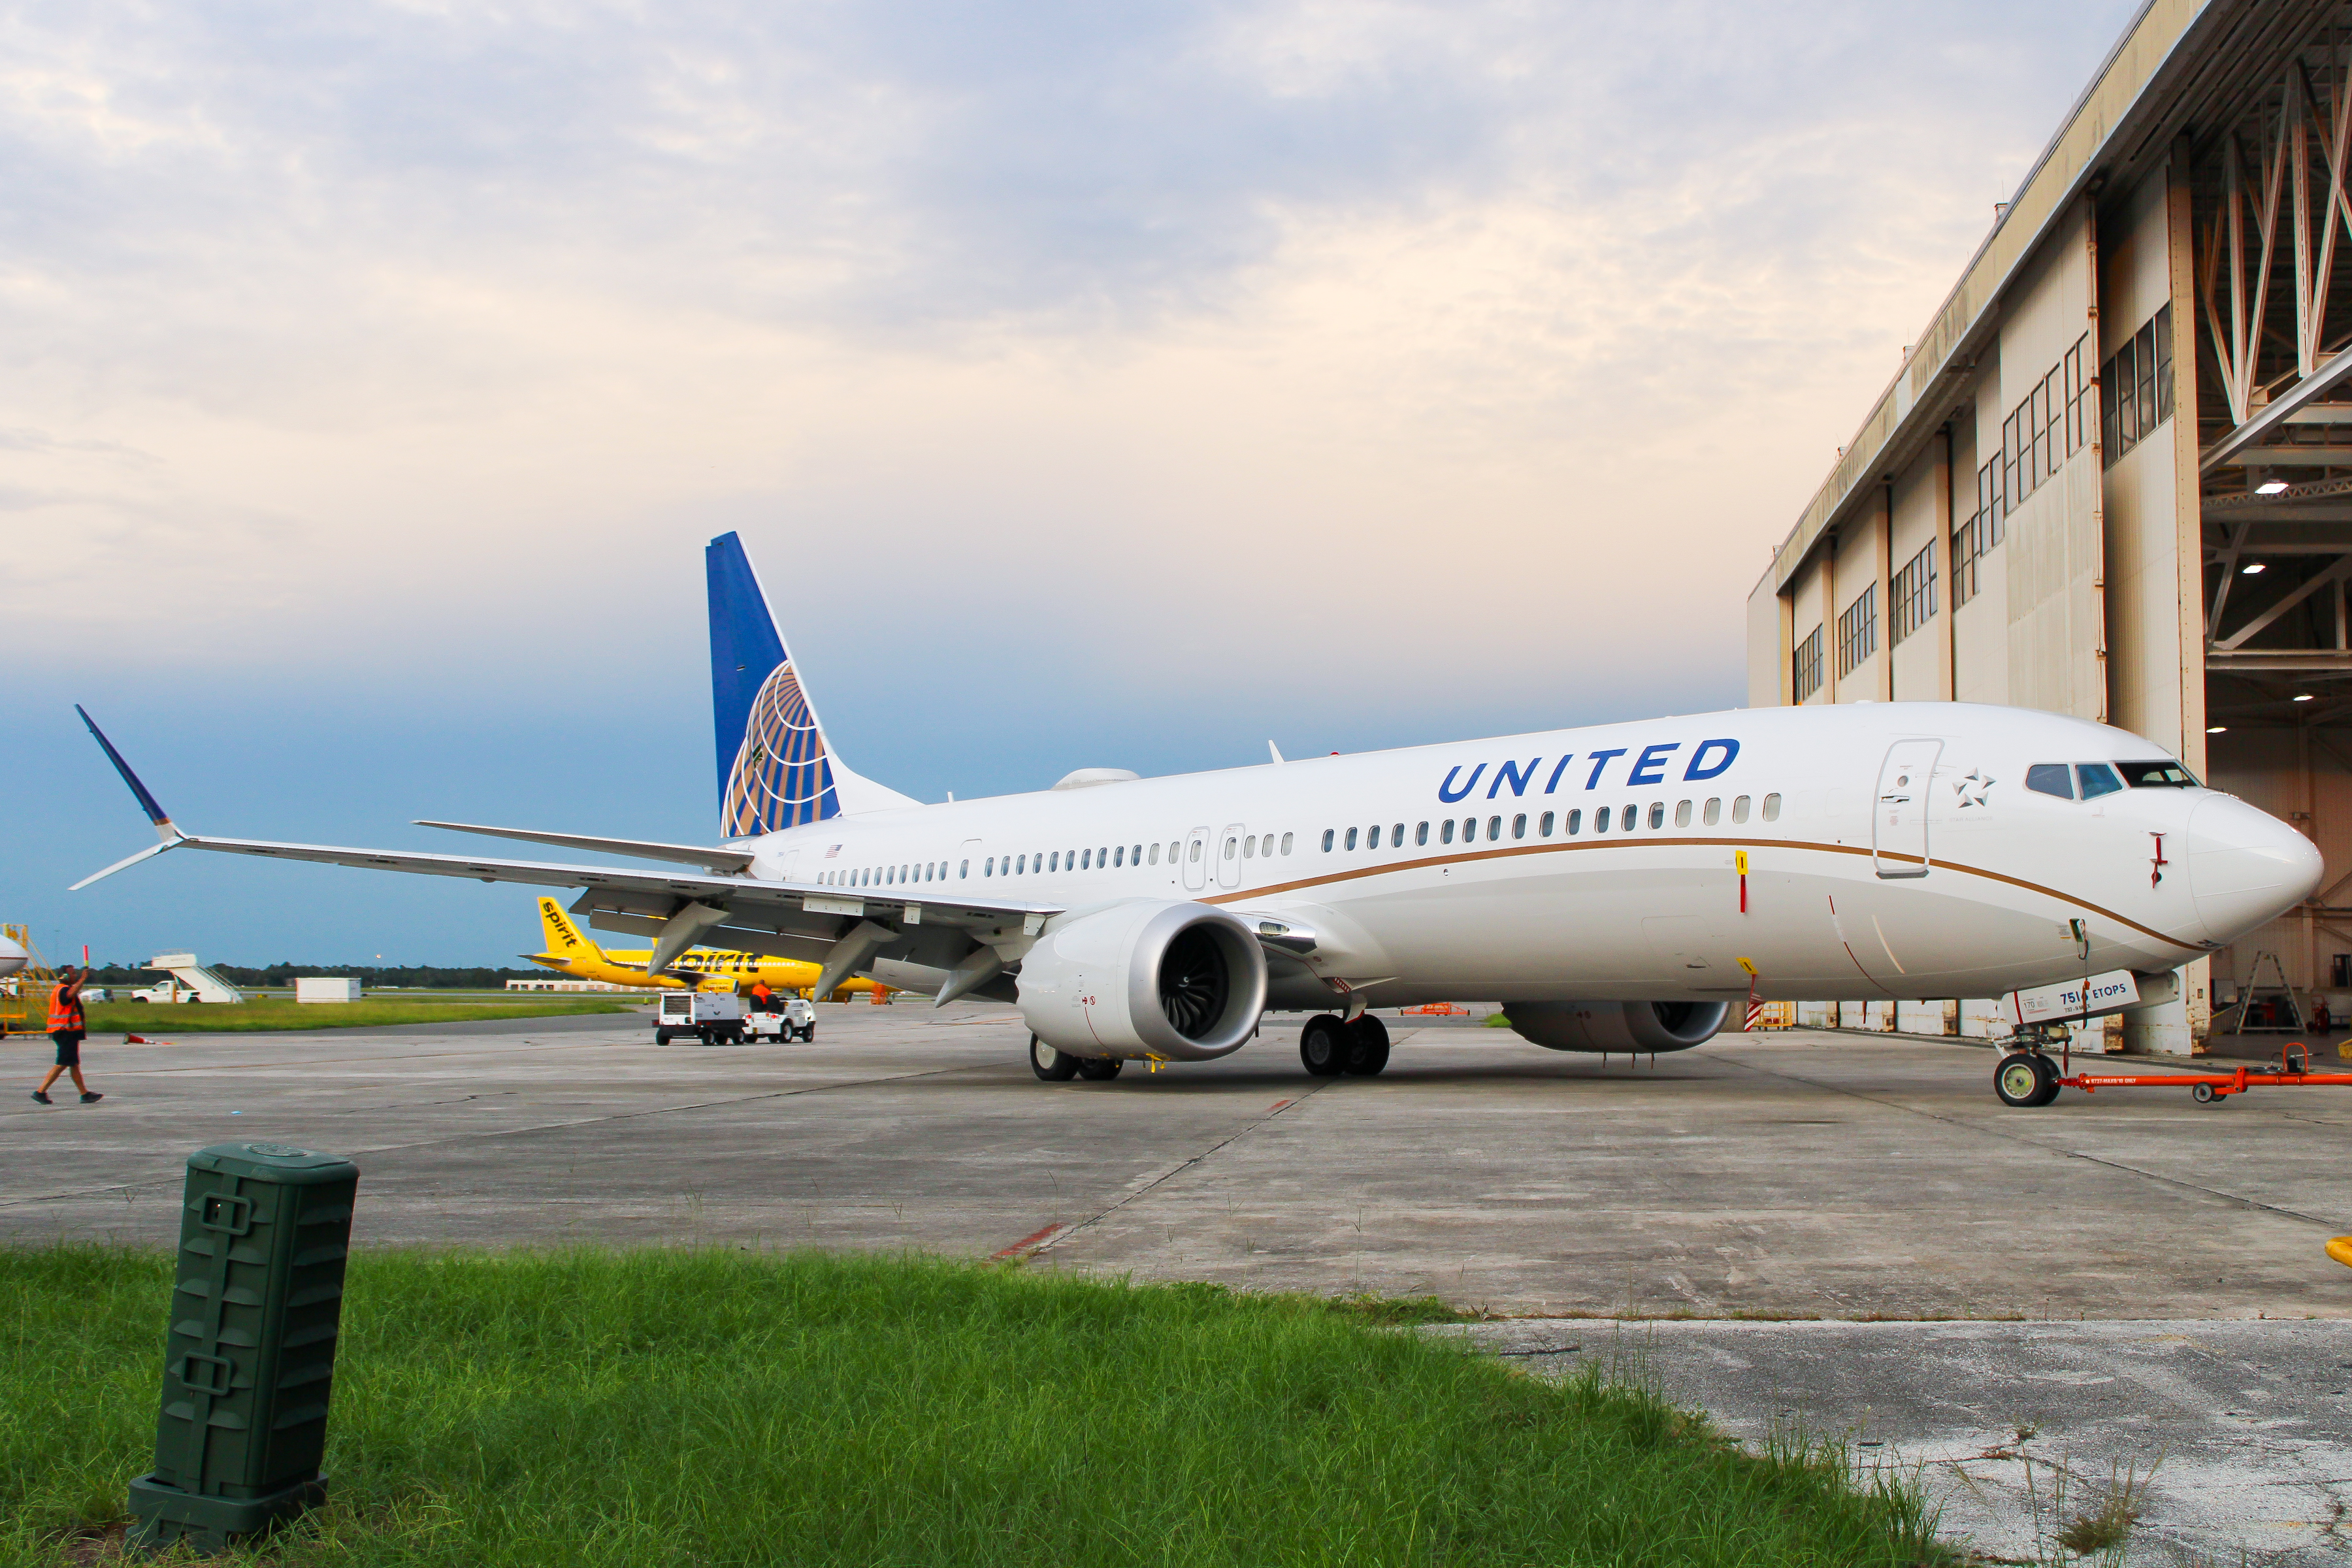 Photo of N37514 - United Airlines Boeing 737 MAX 9 at MCO